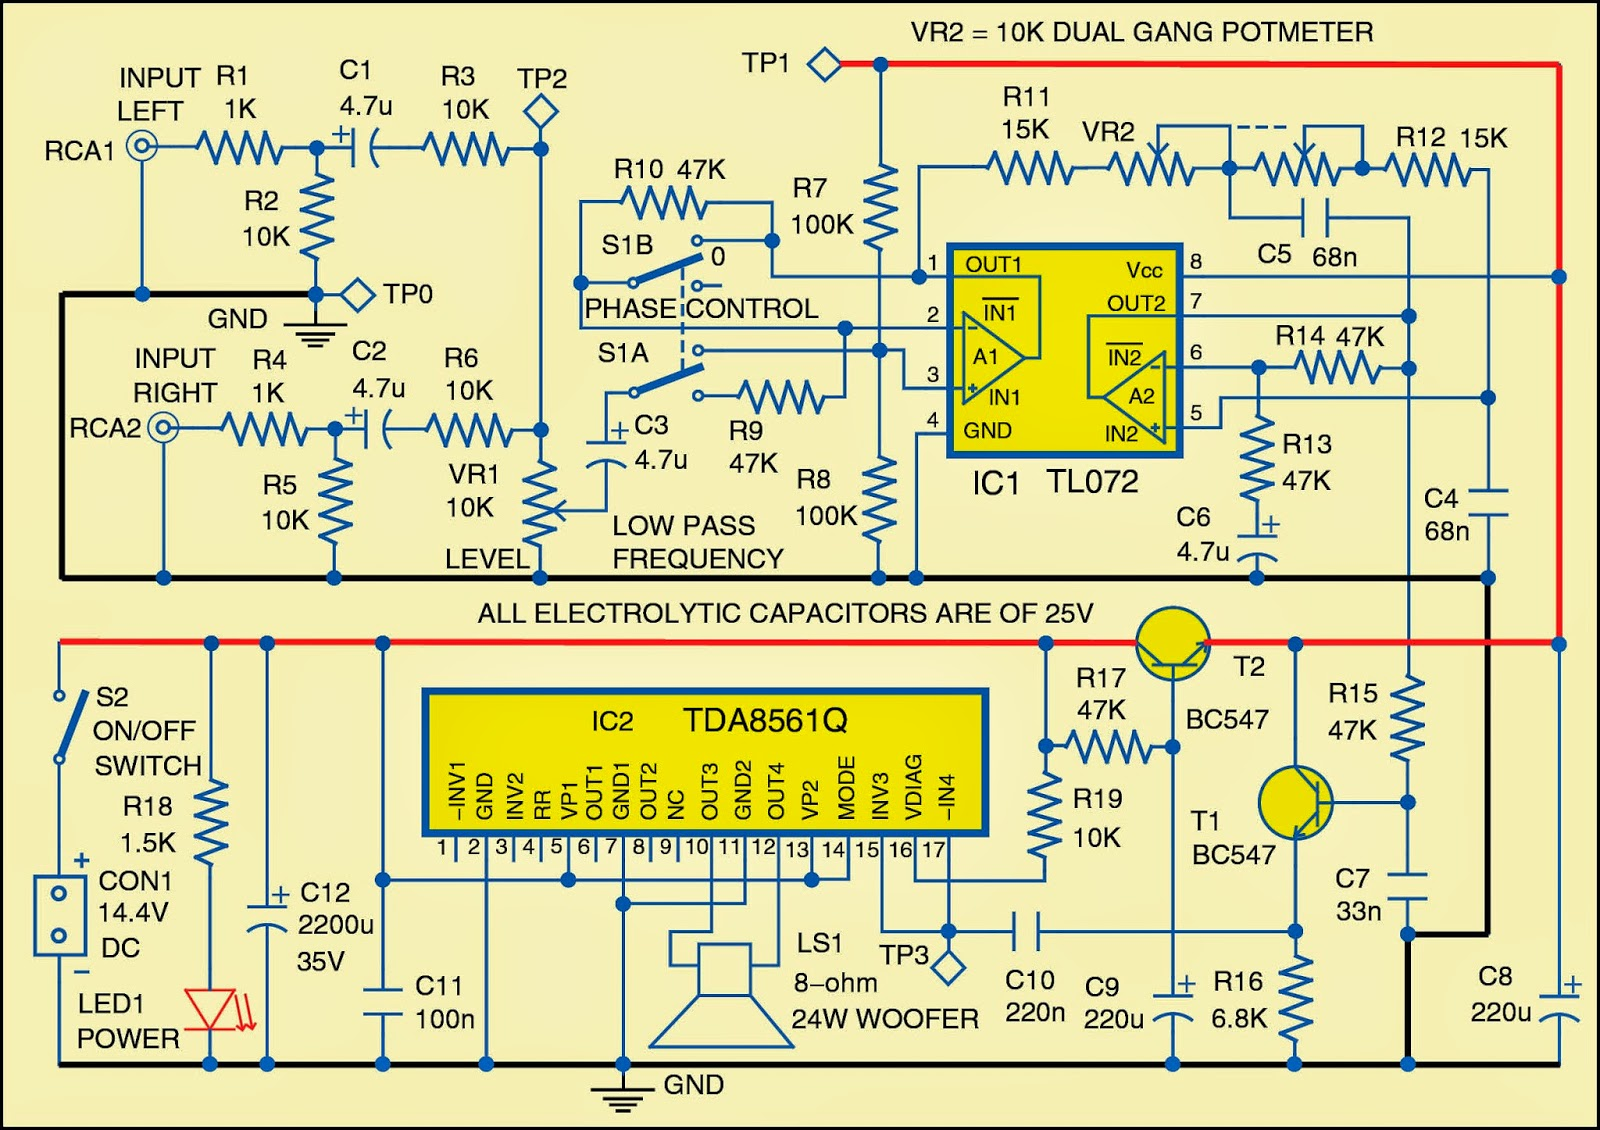 dld mini projects circuit diagram 2004 suzuki intruder 1500 wiring low noise power amplifier for subwoofer